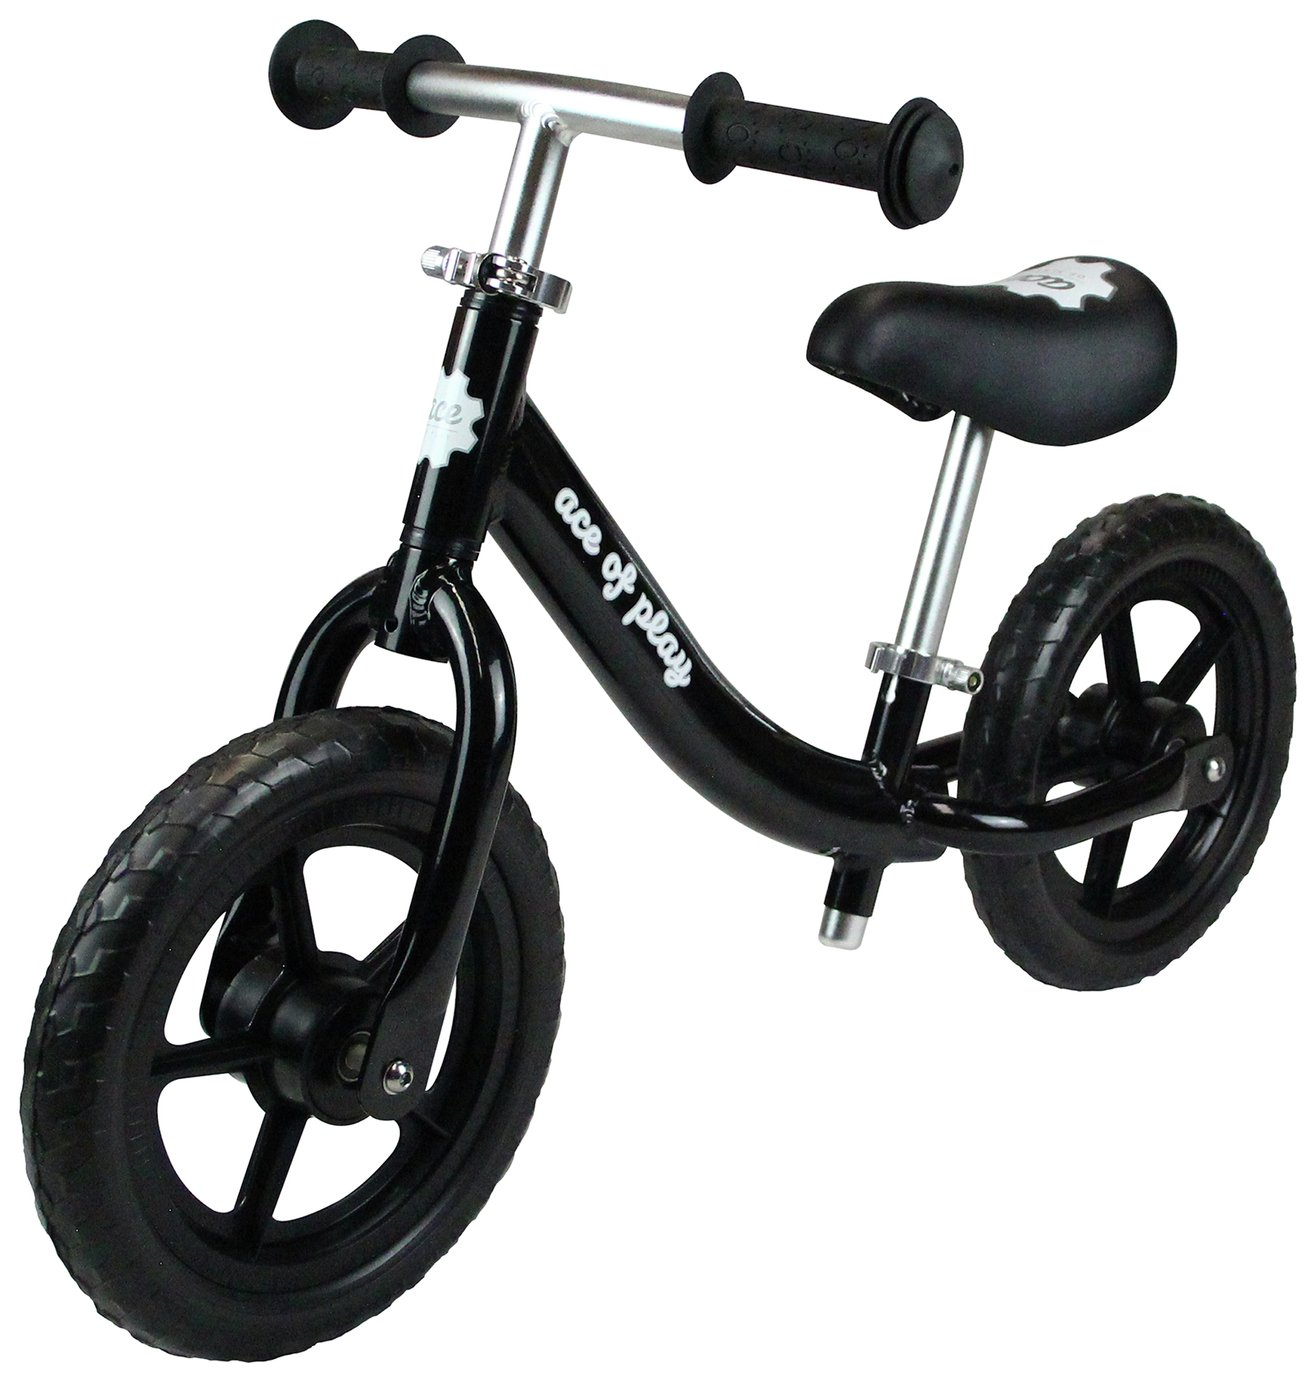 Image of Ace of Play Balance Bike - Black.